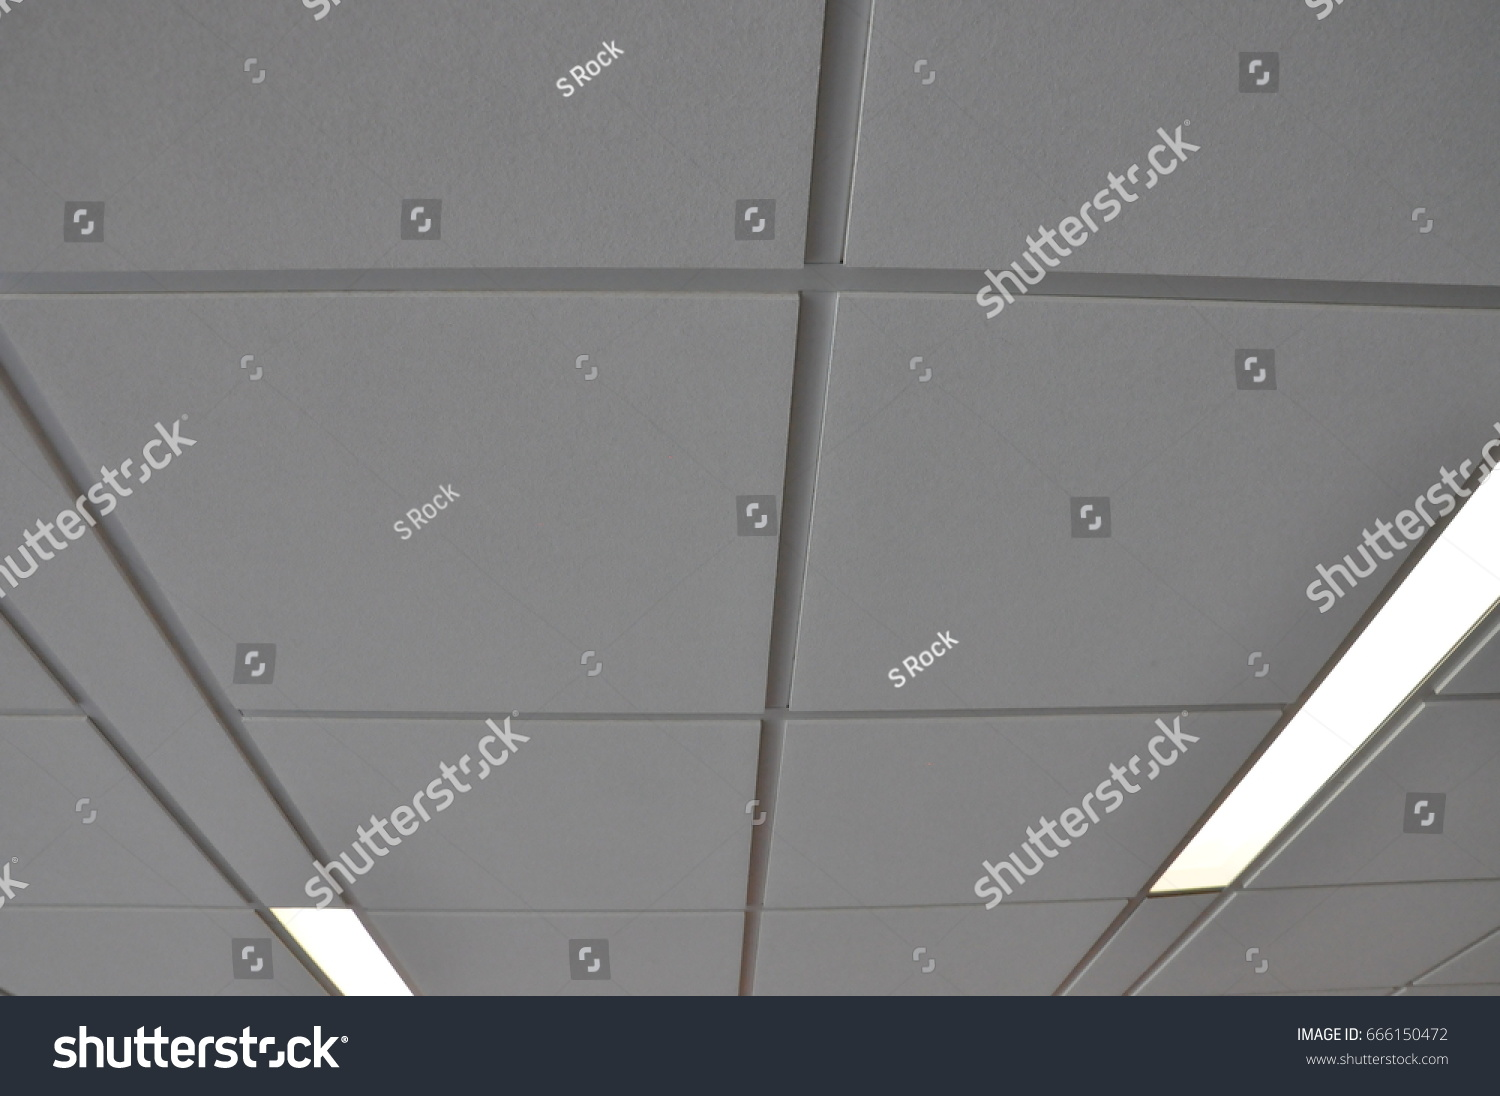 Ceiling tiles stock photo 666150472 shutterstock ceiling tiles dailygadgetfo Images